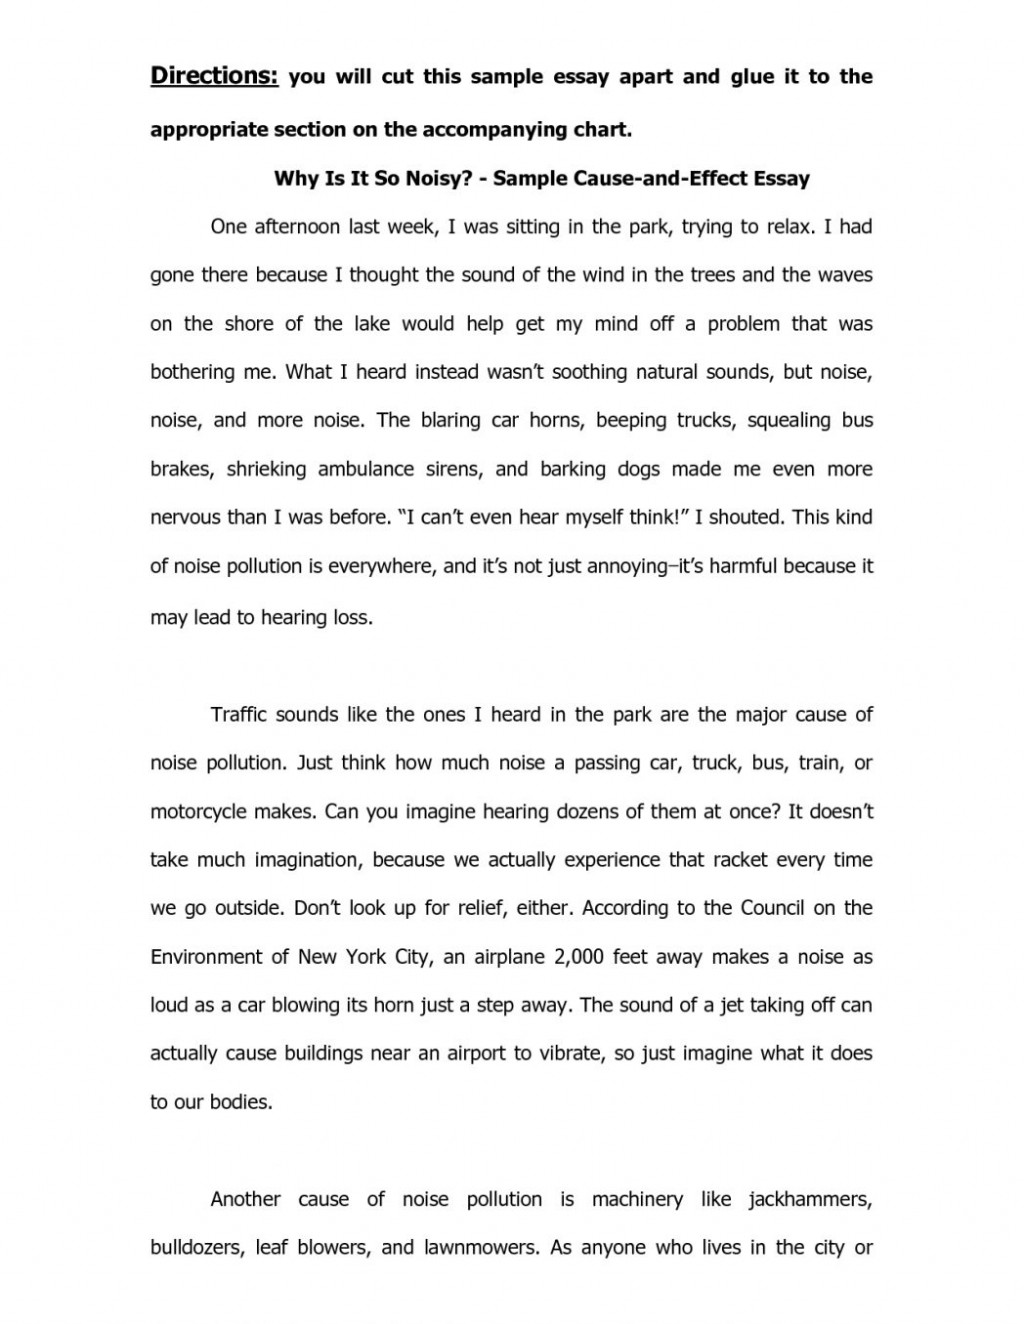 011 Free Cv Template Word014 Cause And Effect Divorce Essay Causes Effects Of Cover L Example Sample Impressive Questions On Sleep Deprivation Bullying Large